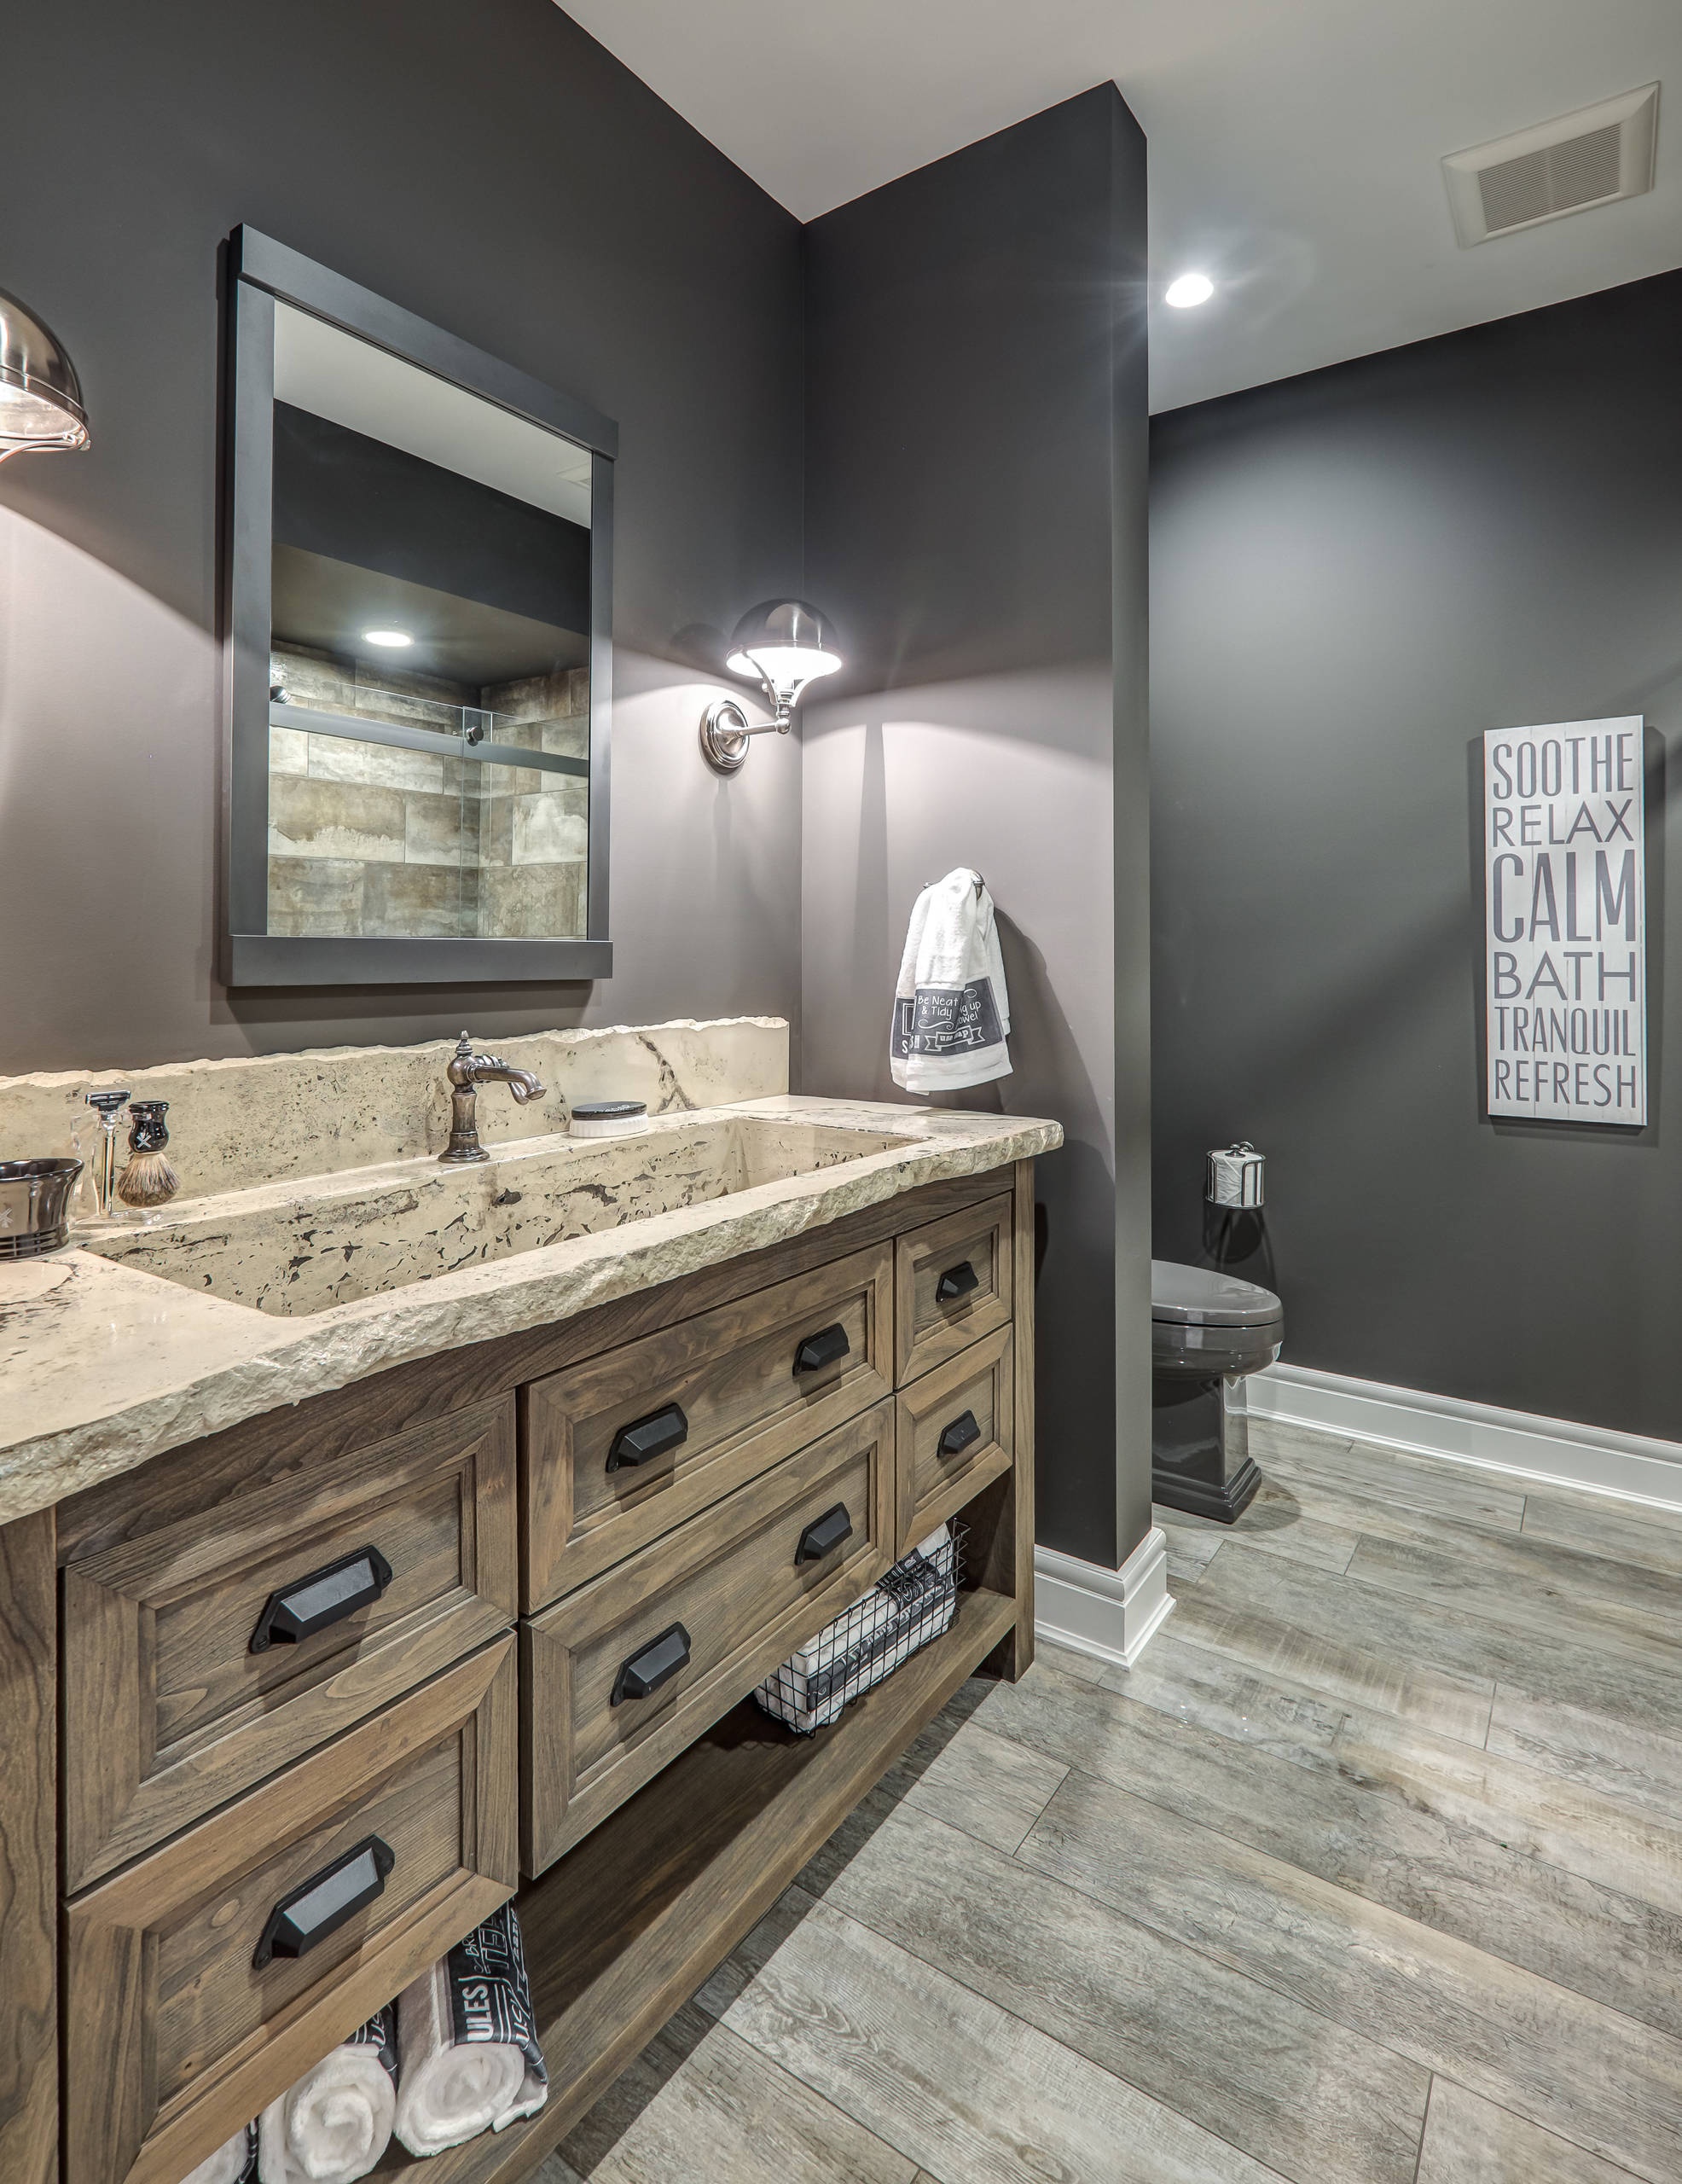 75 Beautiful Slate Tile Bathroom Pictures Ideas May 2021 Houzz